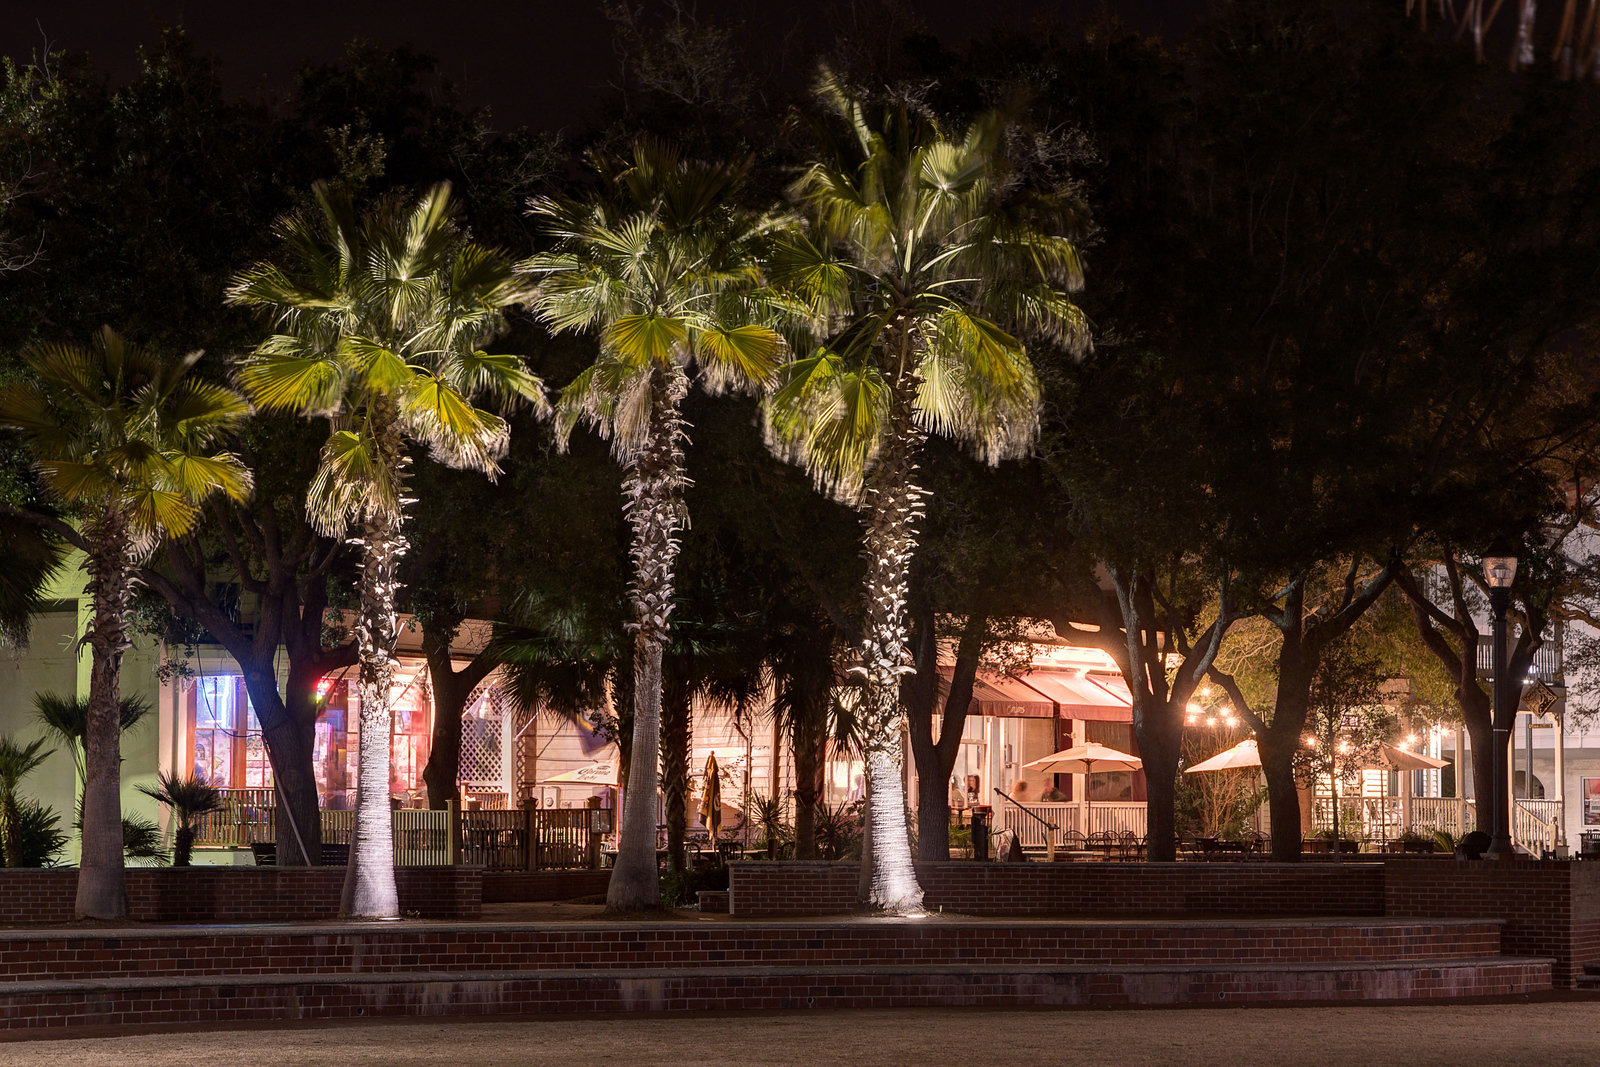 Peaceful night view of the Pavilion Park in Beaufort, SC on Saturday, February 21, 2015. Copyright 2015 Jason Barnette